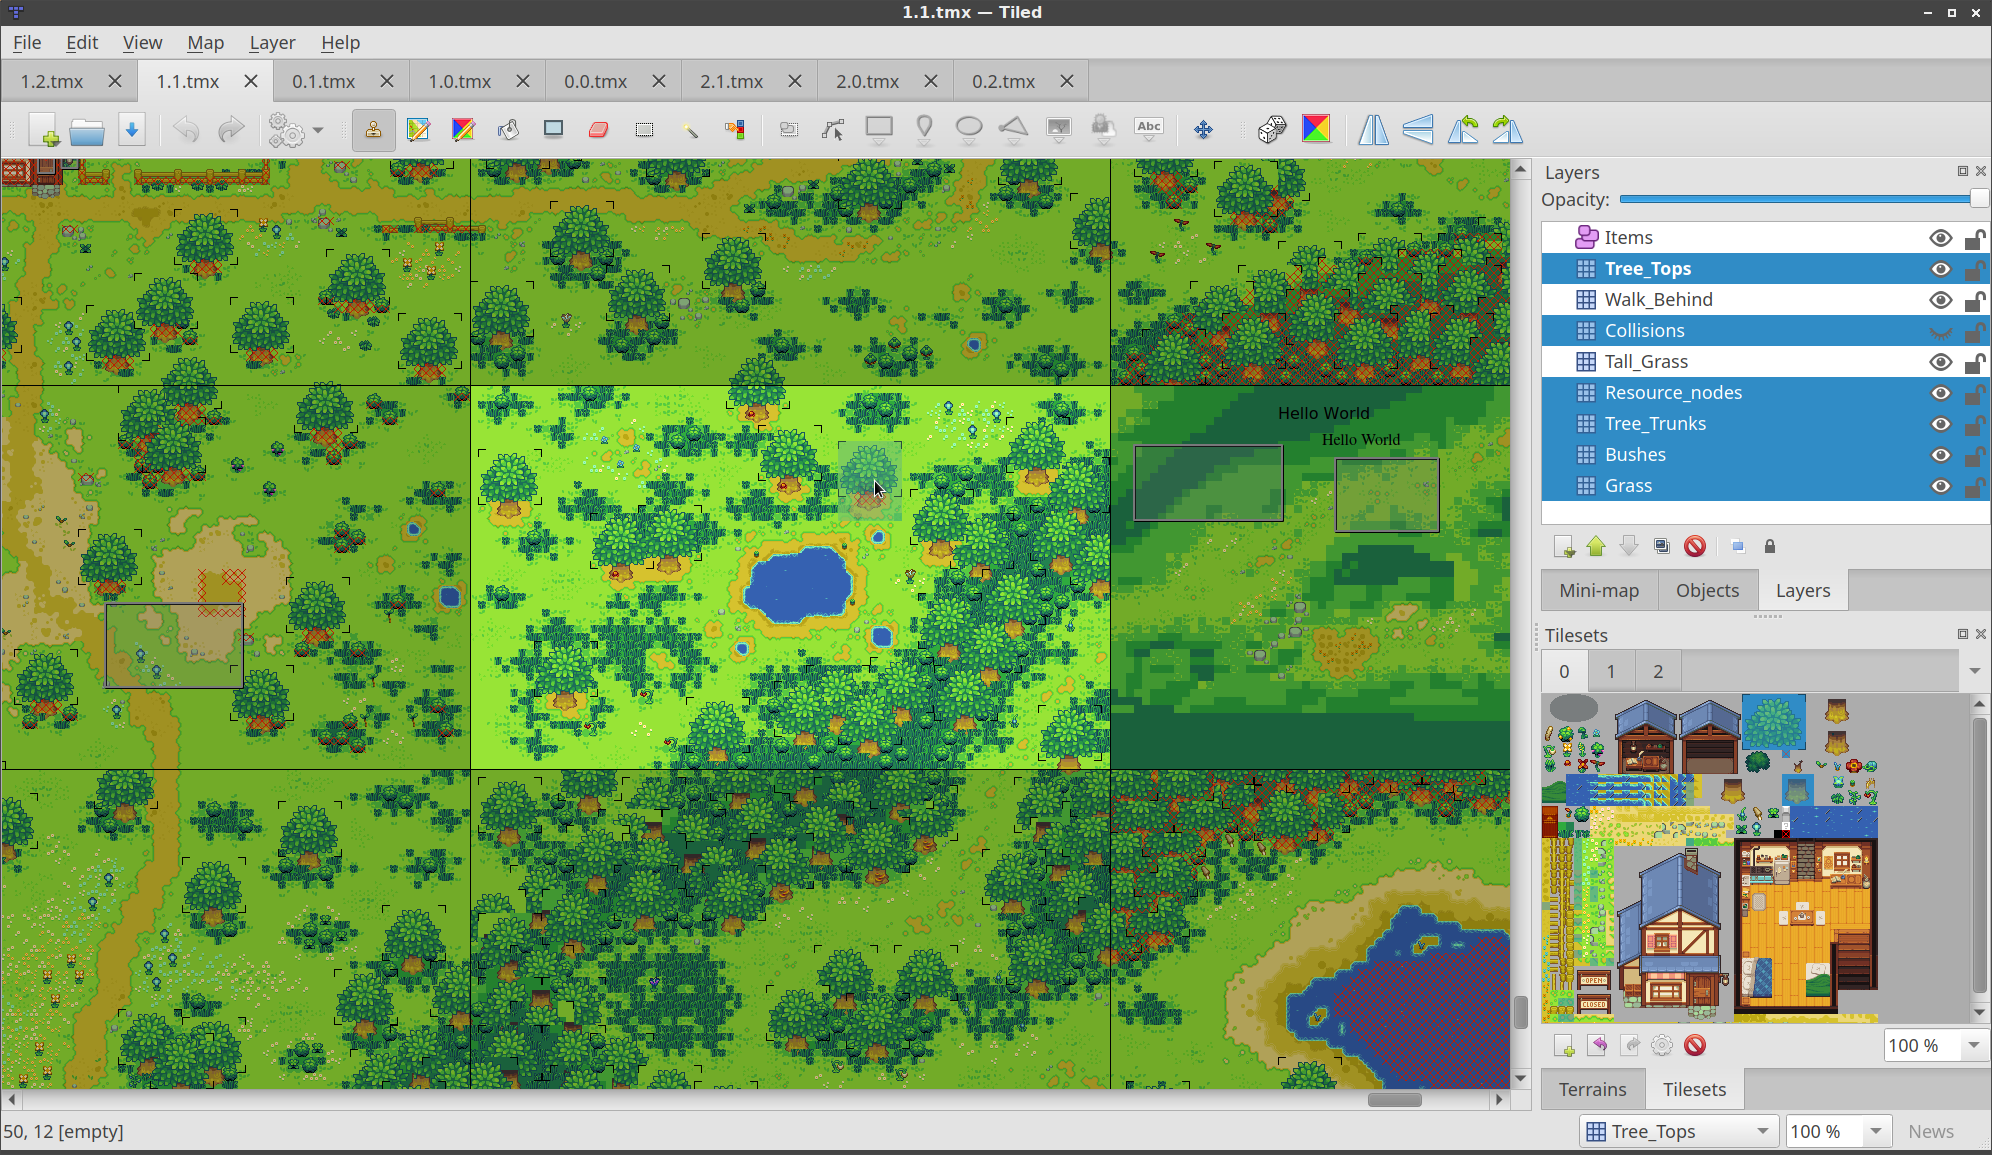 Tiled 1 2 released | Tiled Map Editor